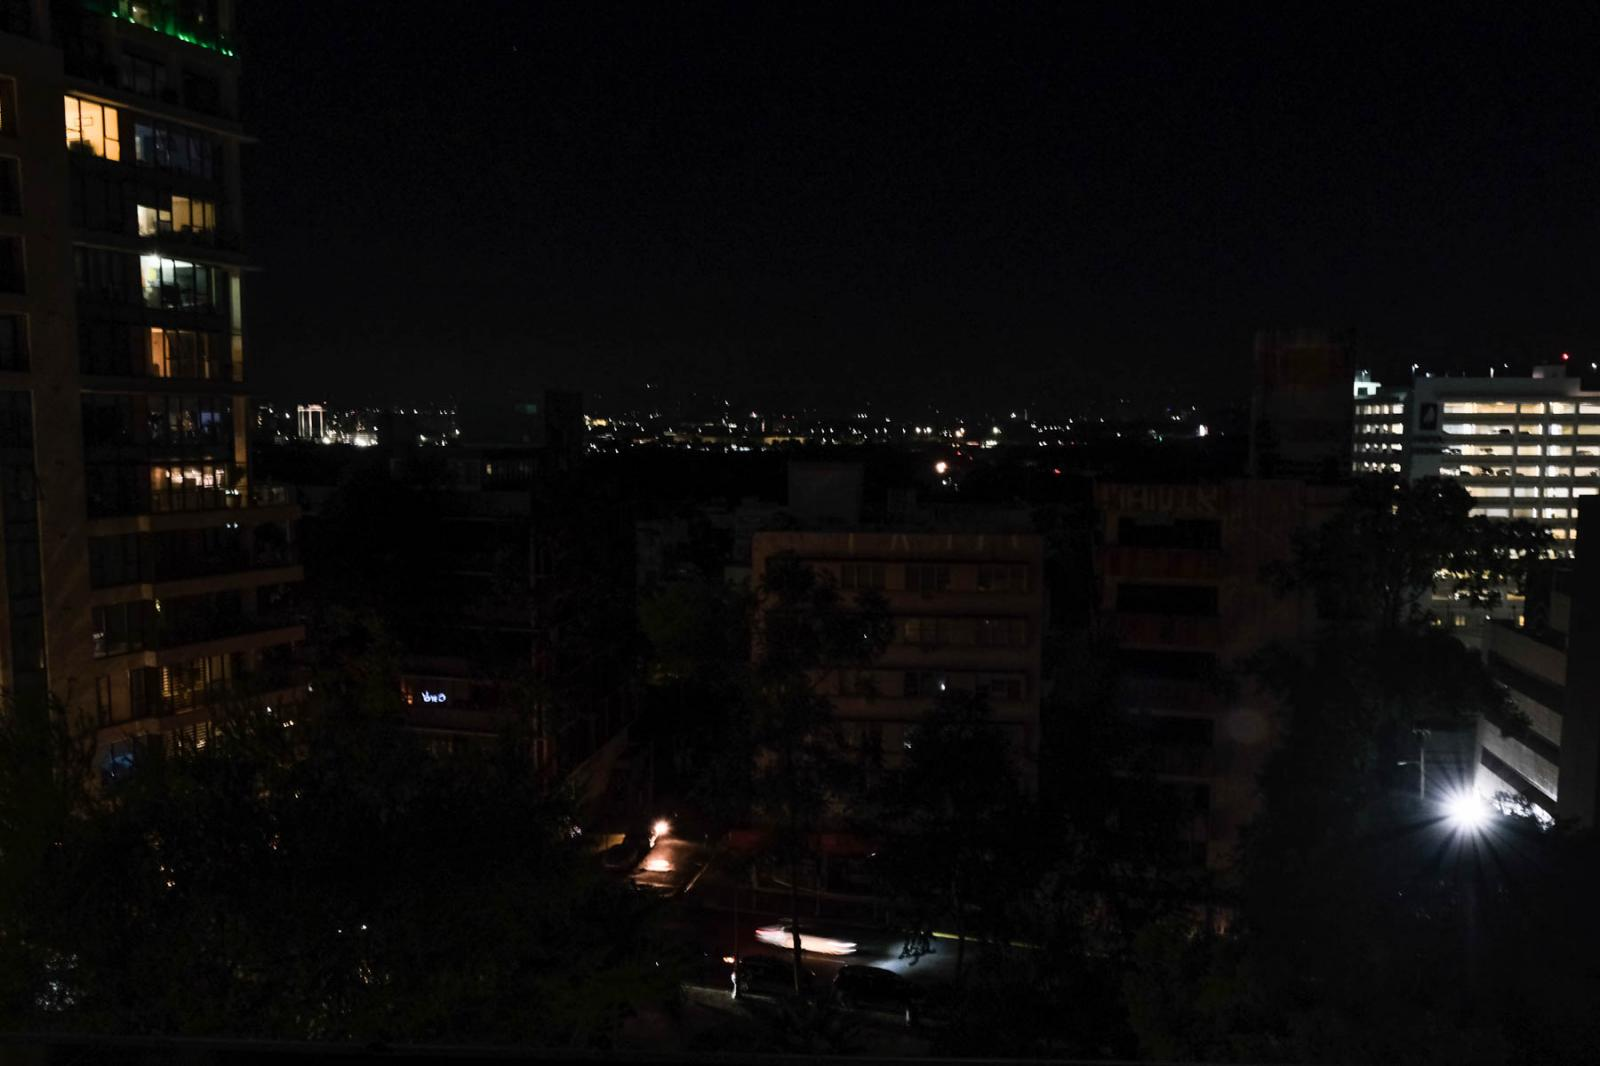 On the morning of January 7th, 2020, two earthquakes of 6.6 and 6.0 were reported in the southwestern region of Puerto Rico producing an island-wide blackout. Nightfall in Santurce, San Juan. Gabriella N. Báez for CNN.